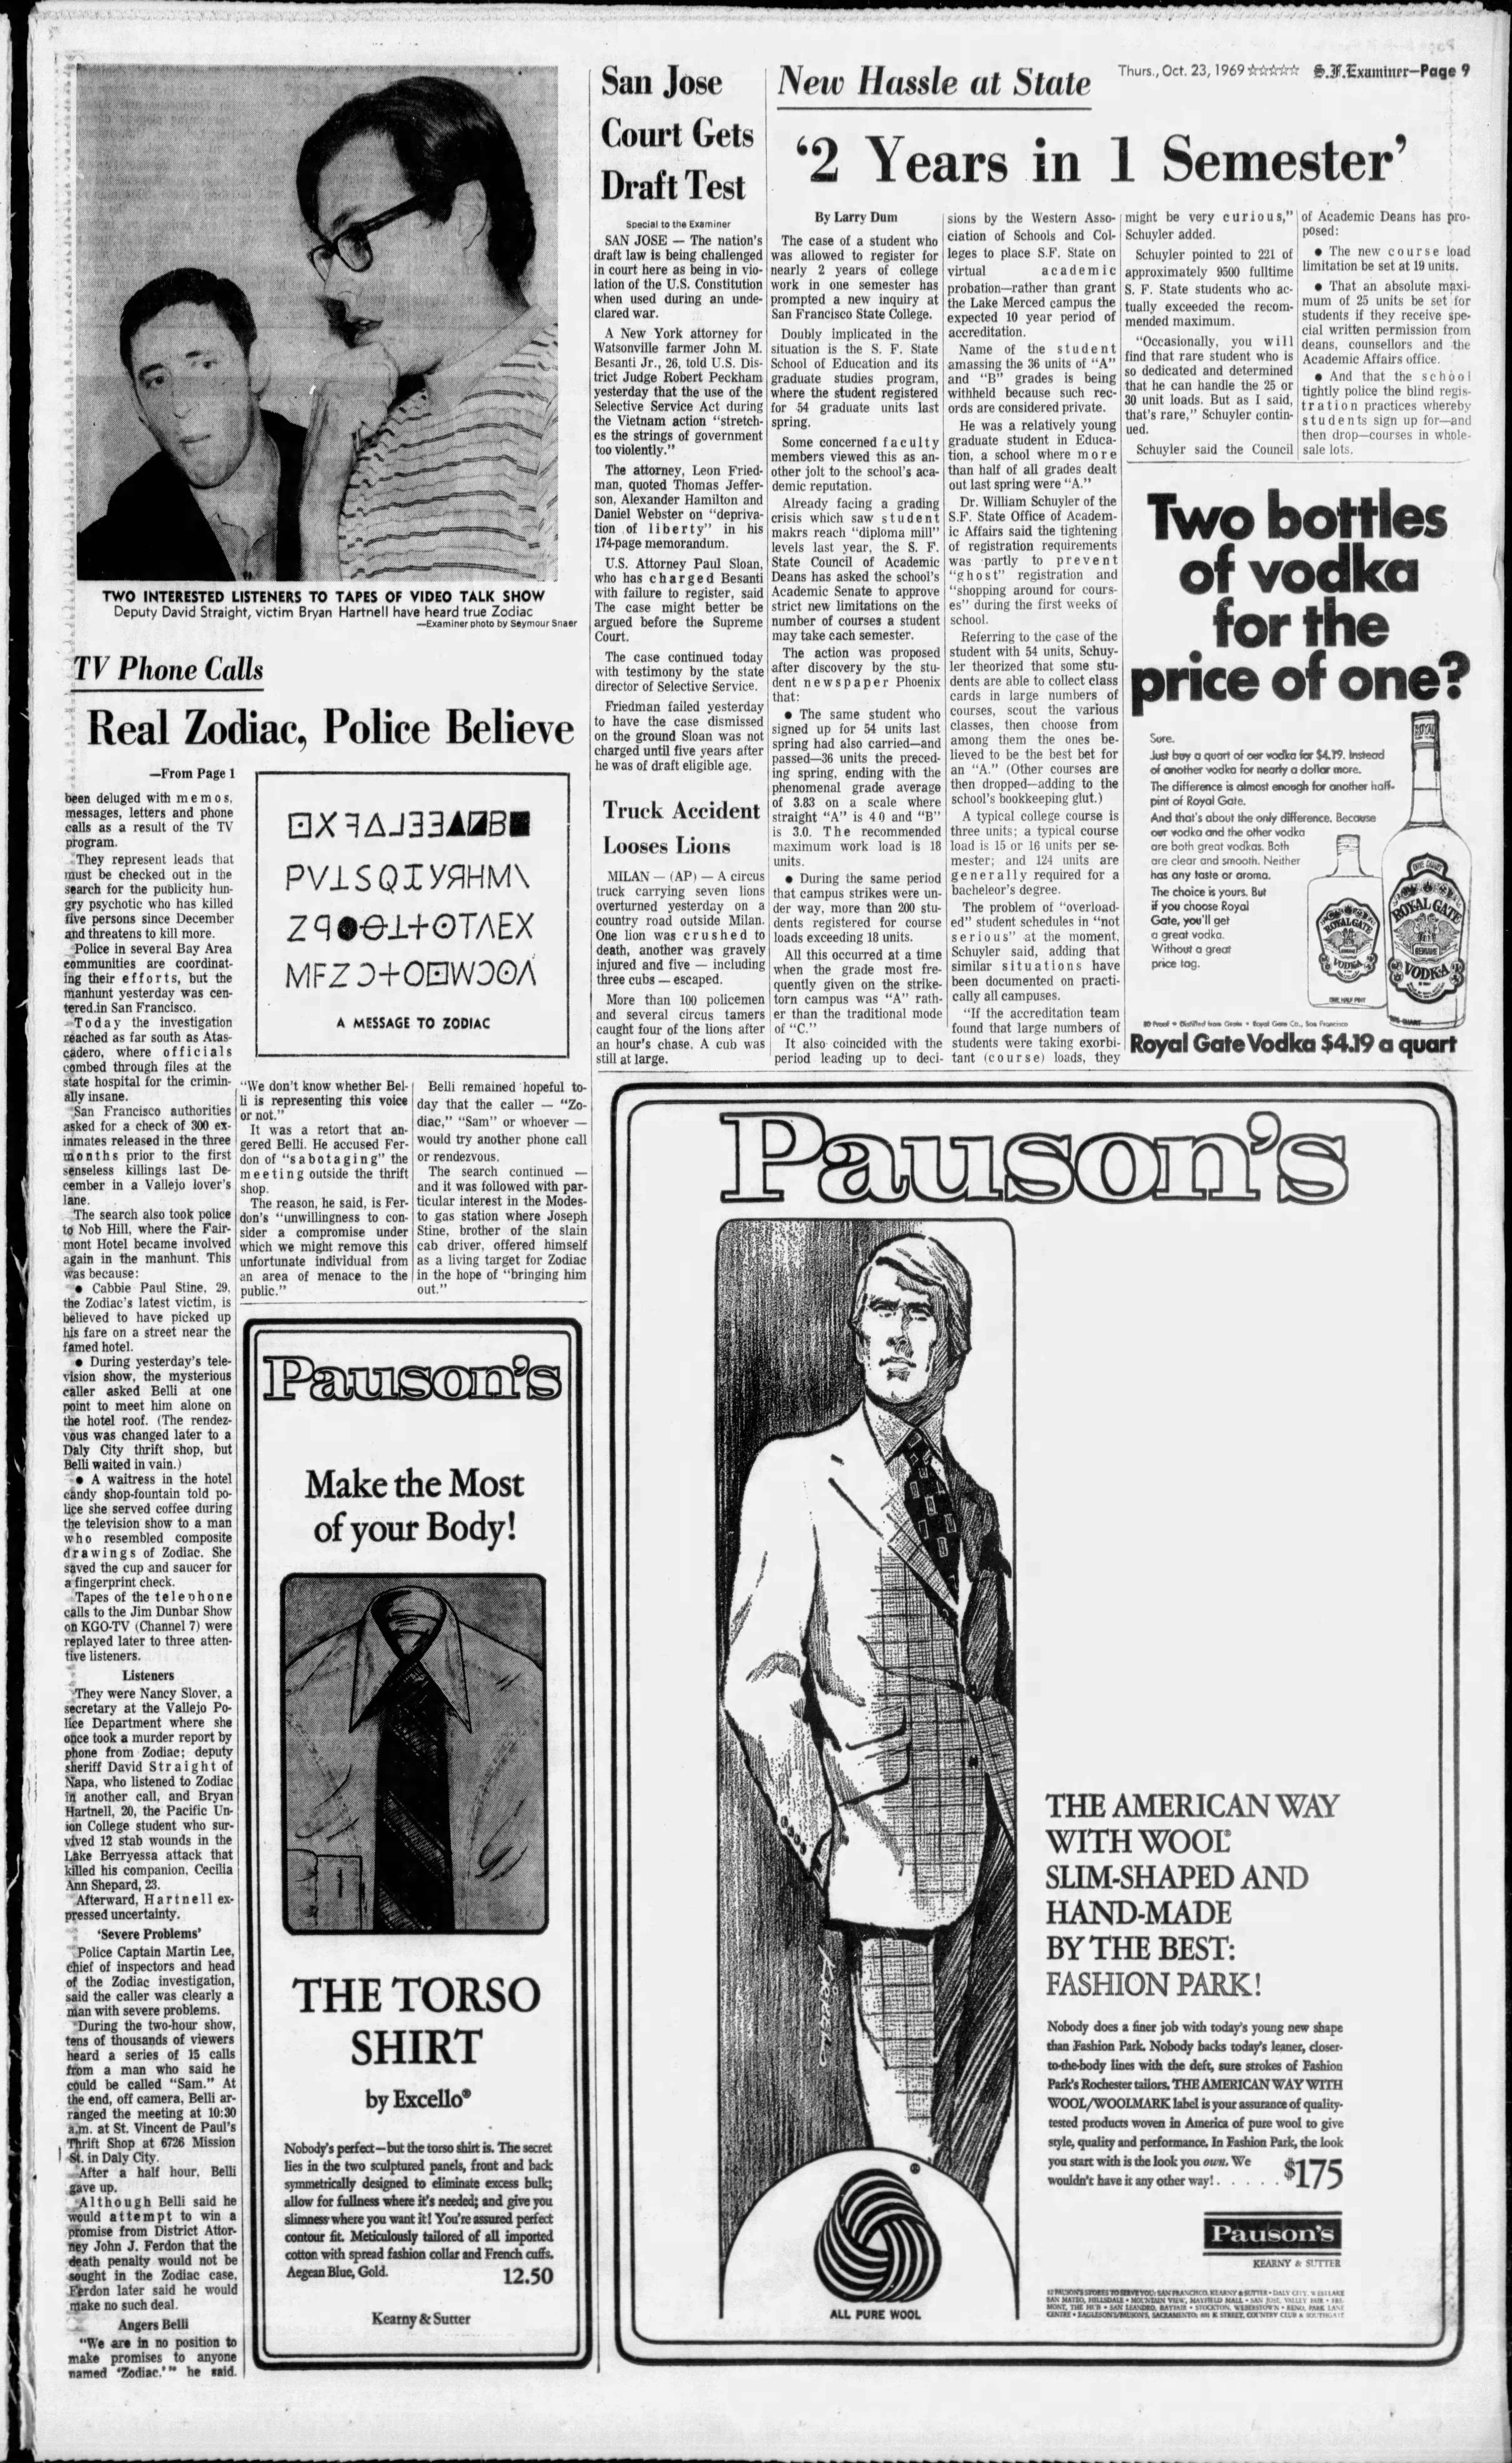 The Stanford Daily, Volume 156, Issue 21, 24 October 1969 — Message To The Zodiac Killer [ARTICLE]